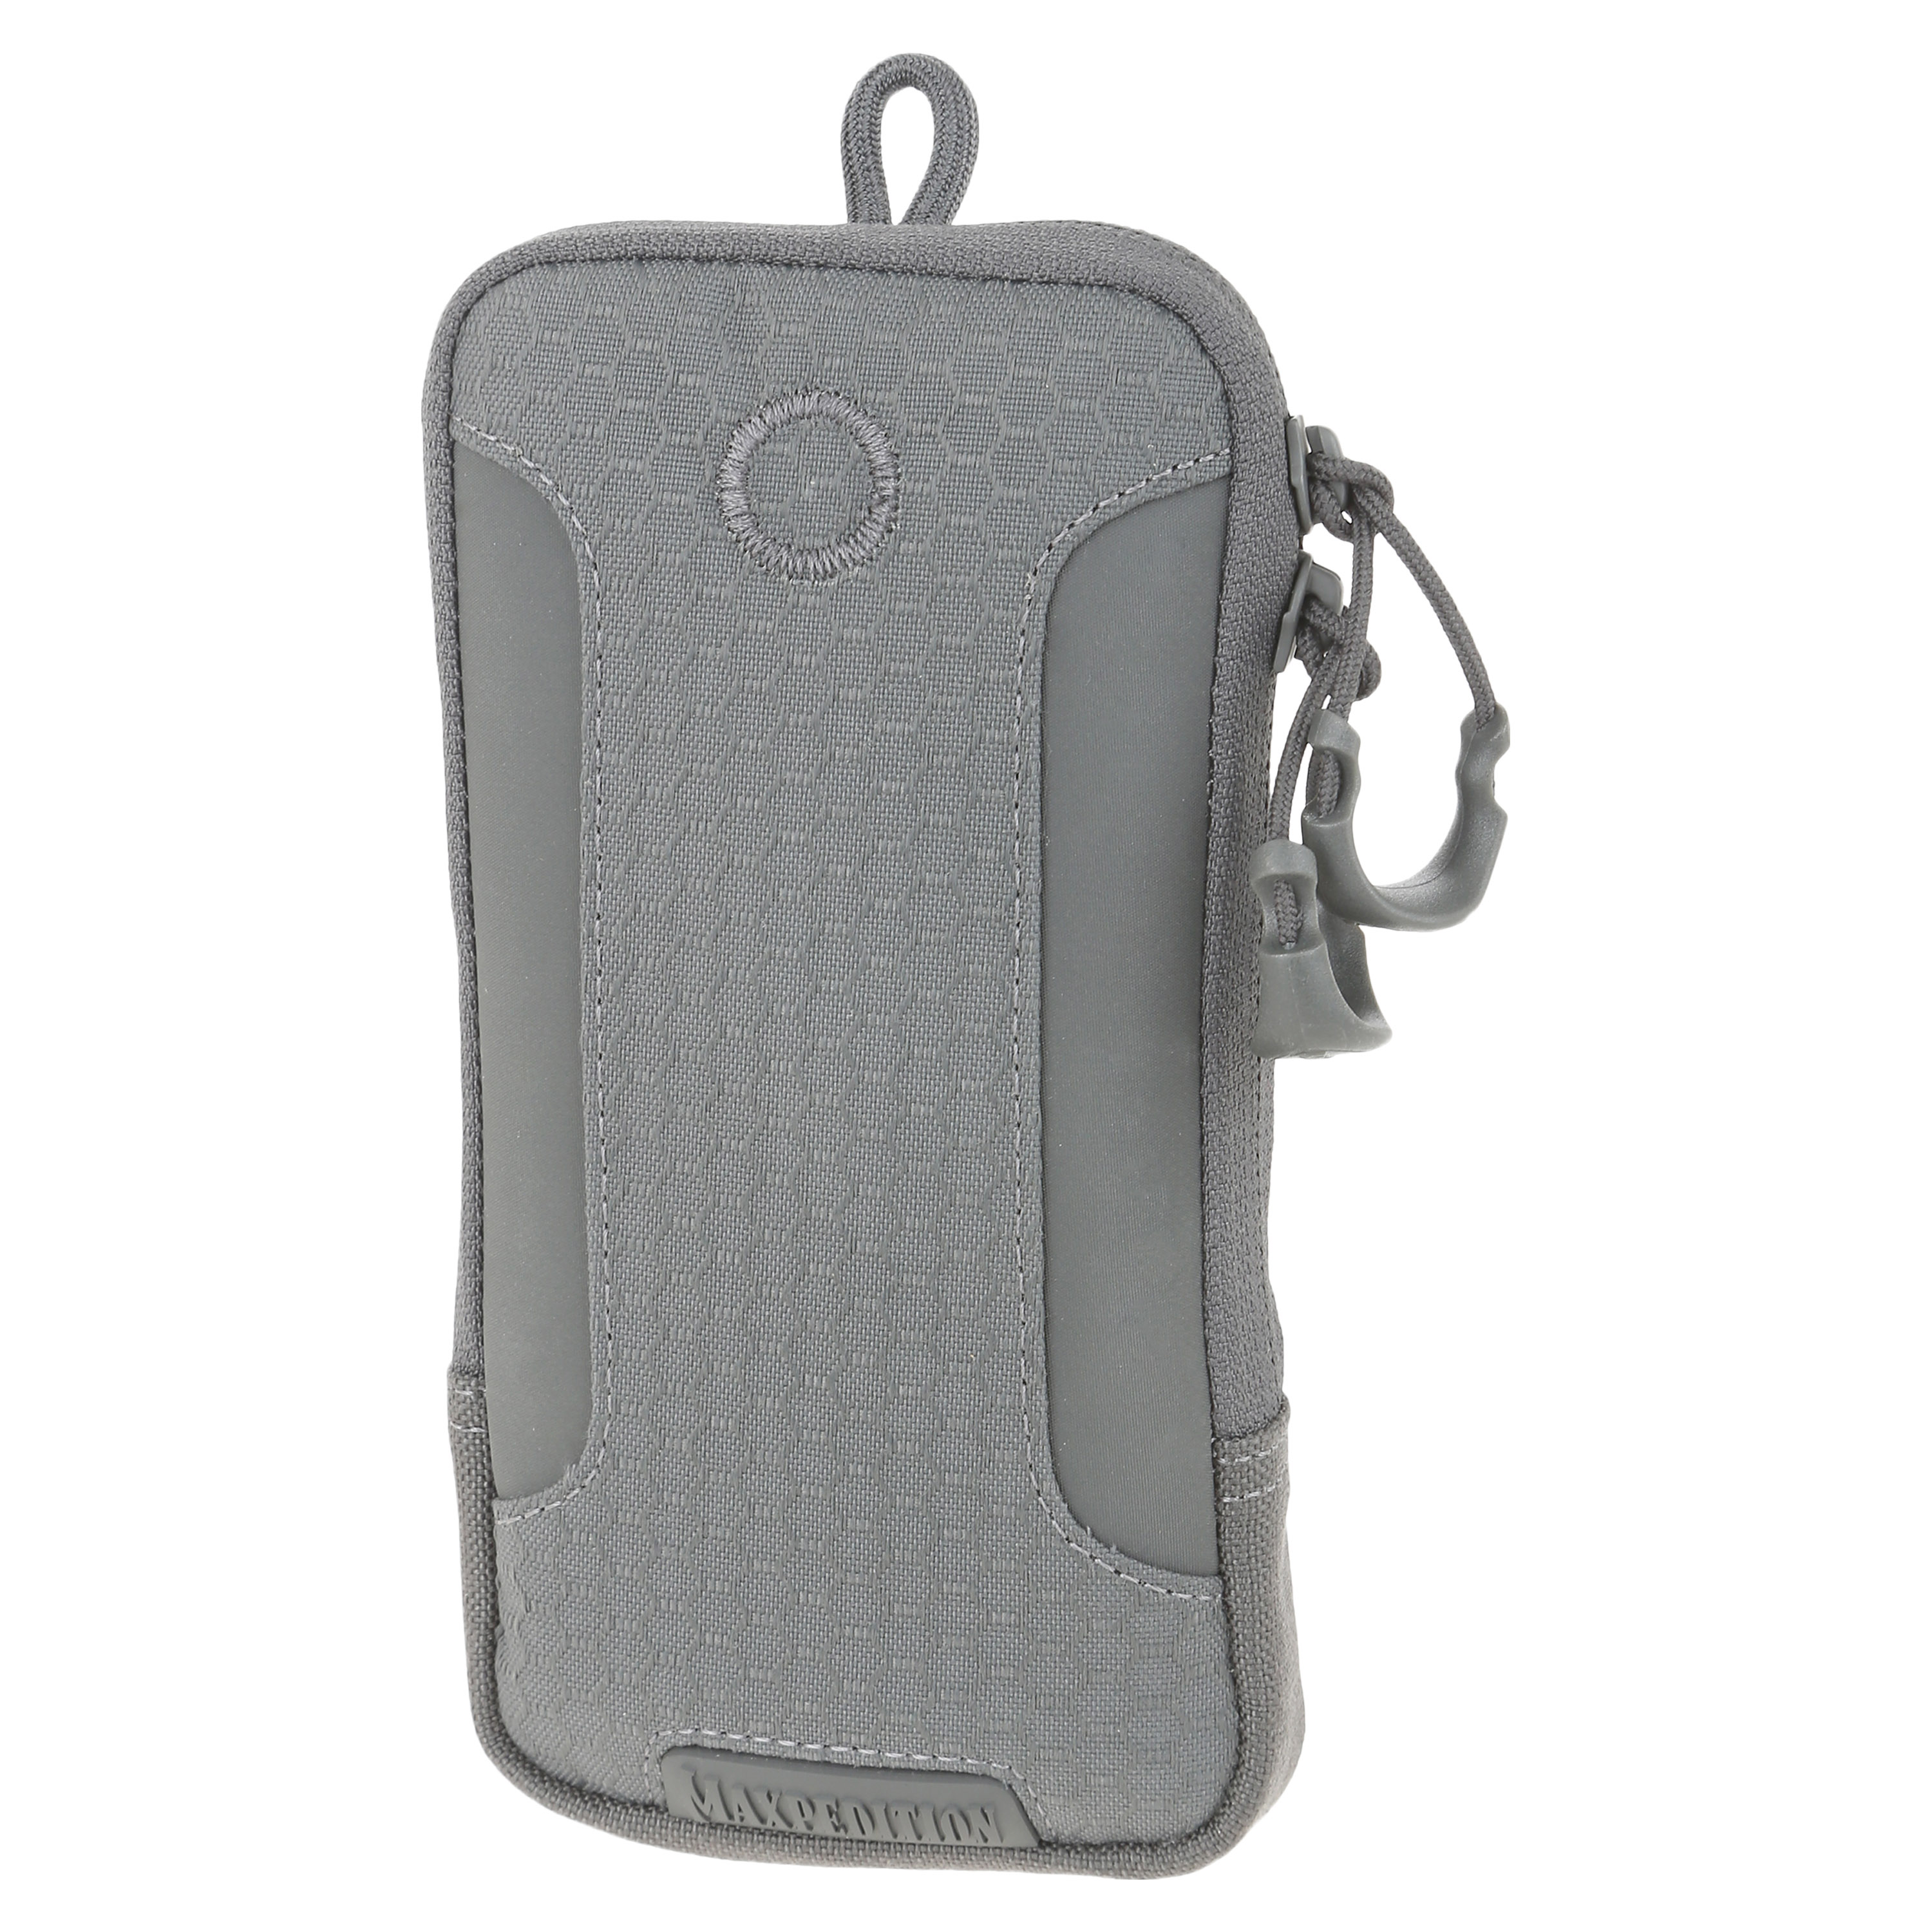 Maxpedition iPhone 6/6S/7 Plus Pouch gray